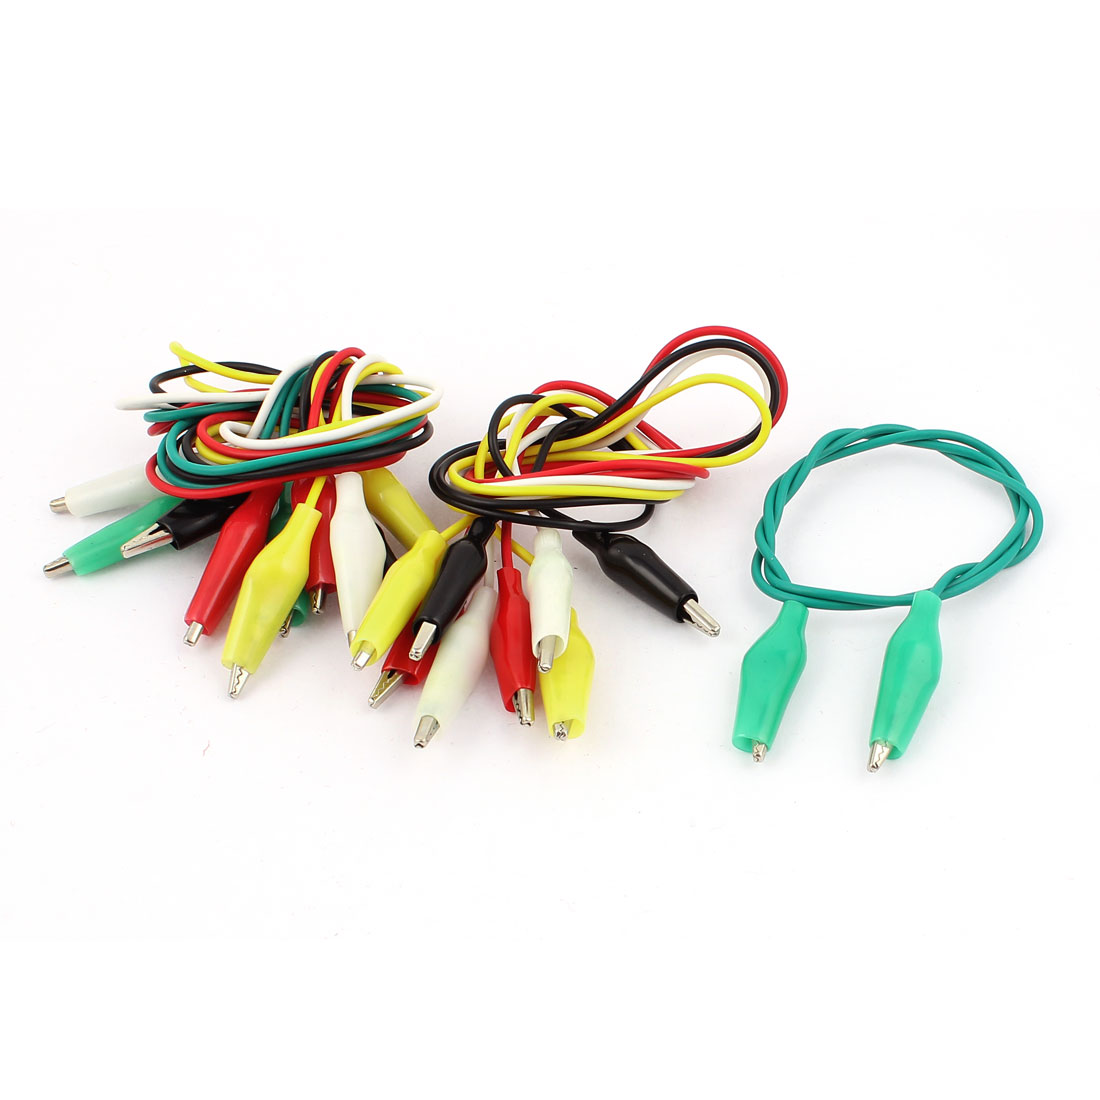 10pcs Assorted Color Plastic Insulation Boot Dual Ended Test Leads Alligator Clip Jumper Probe Cable 52cm